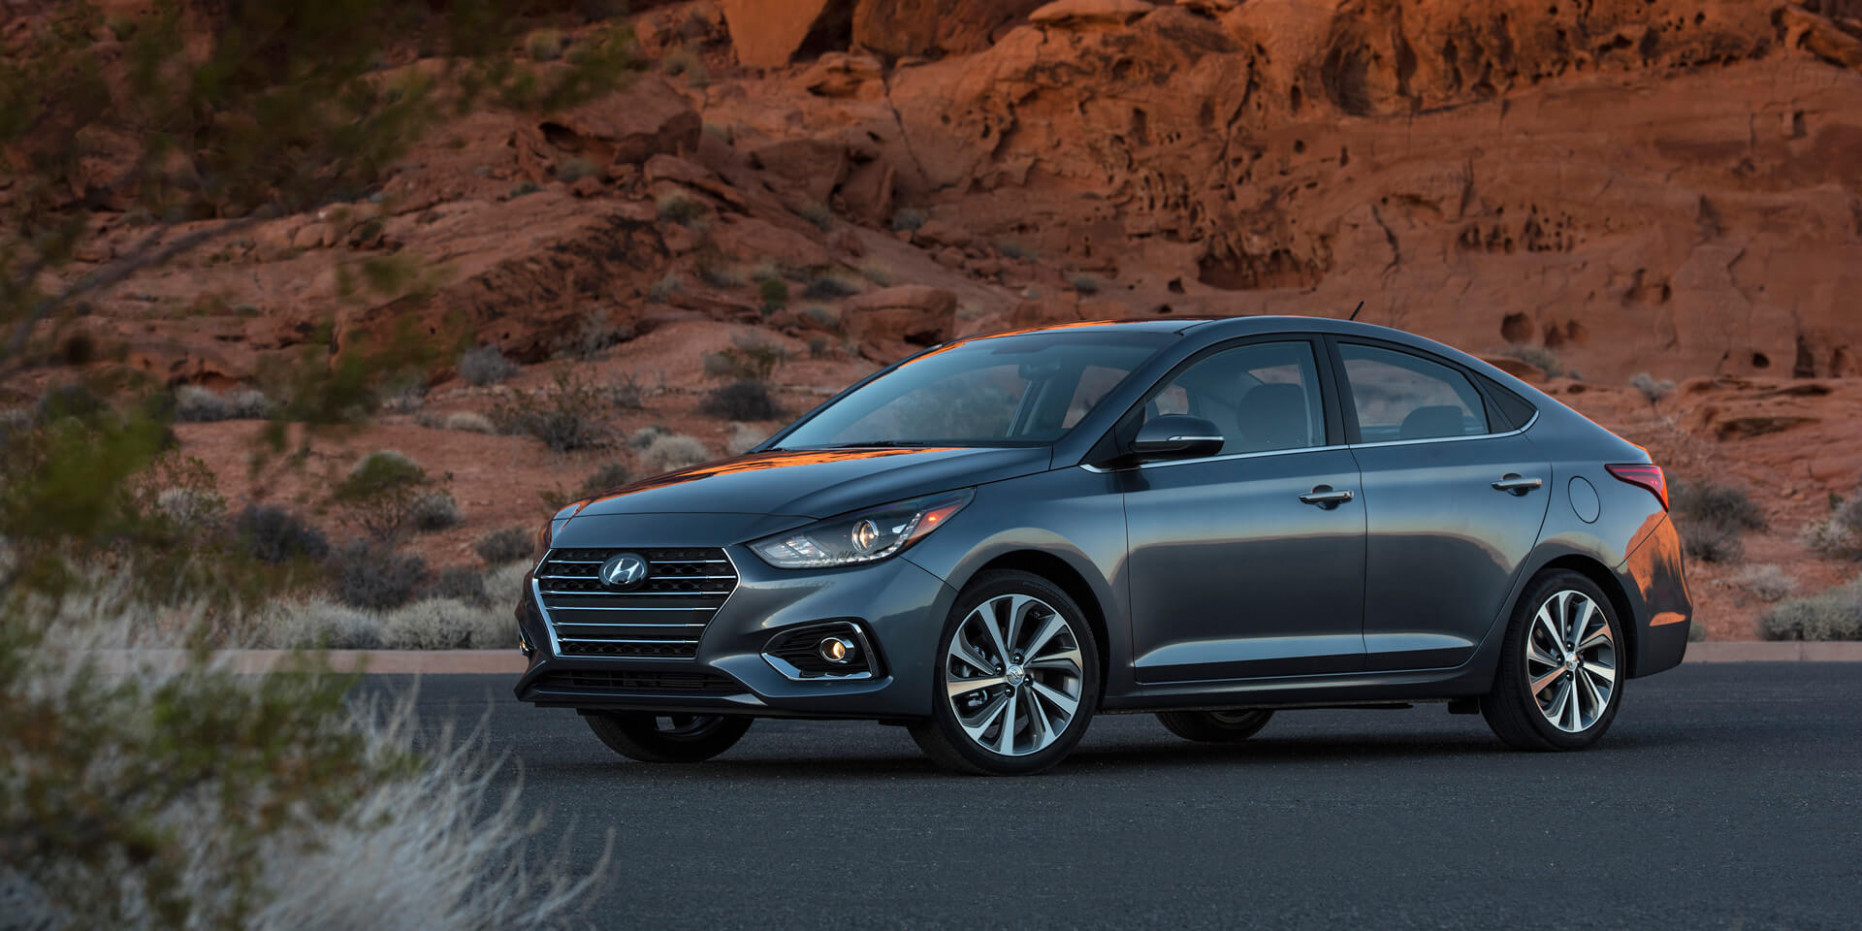 Wallace Hyundai Blog - Wallace Hyundai Blog | News, Updates, and Info | 2020 Hyundai Accent Cruise Control